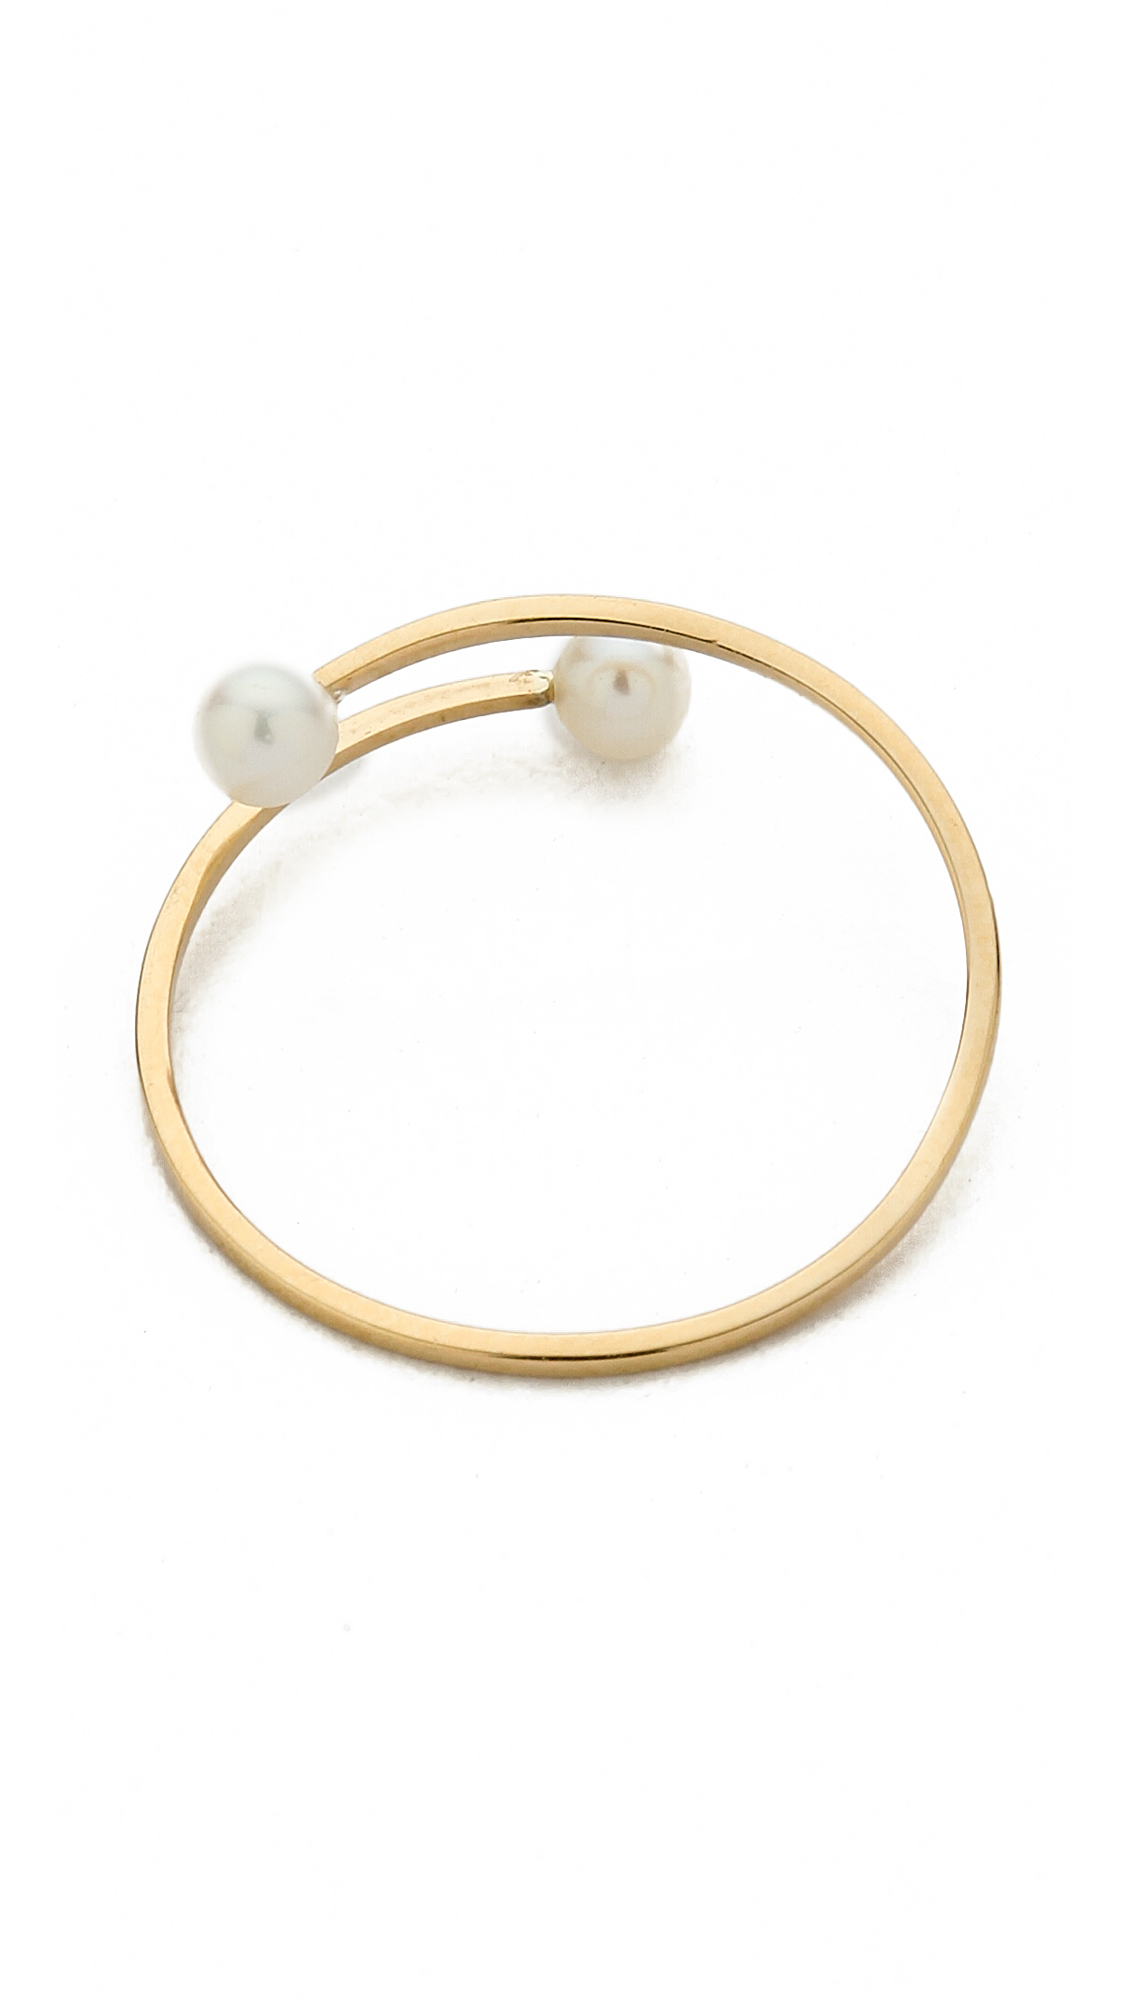 Kristen Elspeth Cultured Freshwater Pearl Ring - Pearl/Gold in Metallic